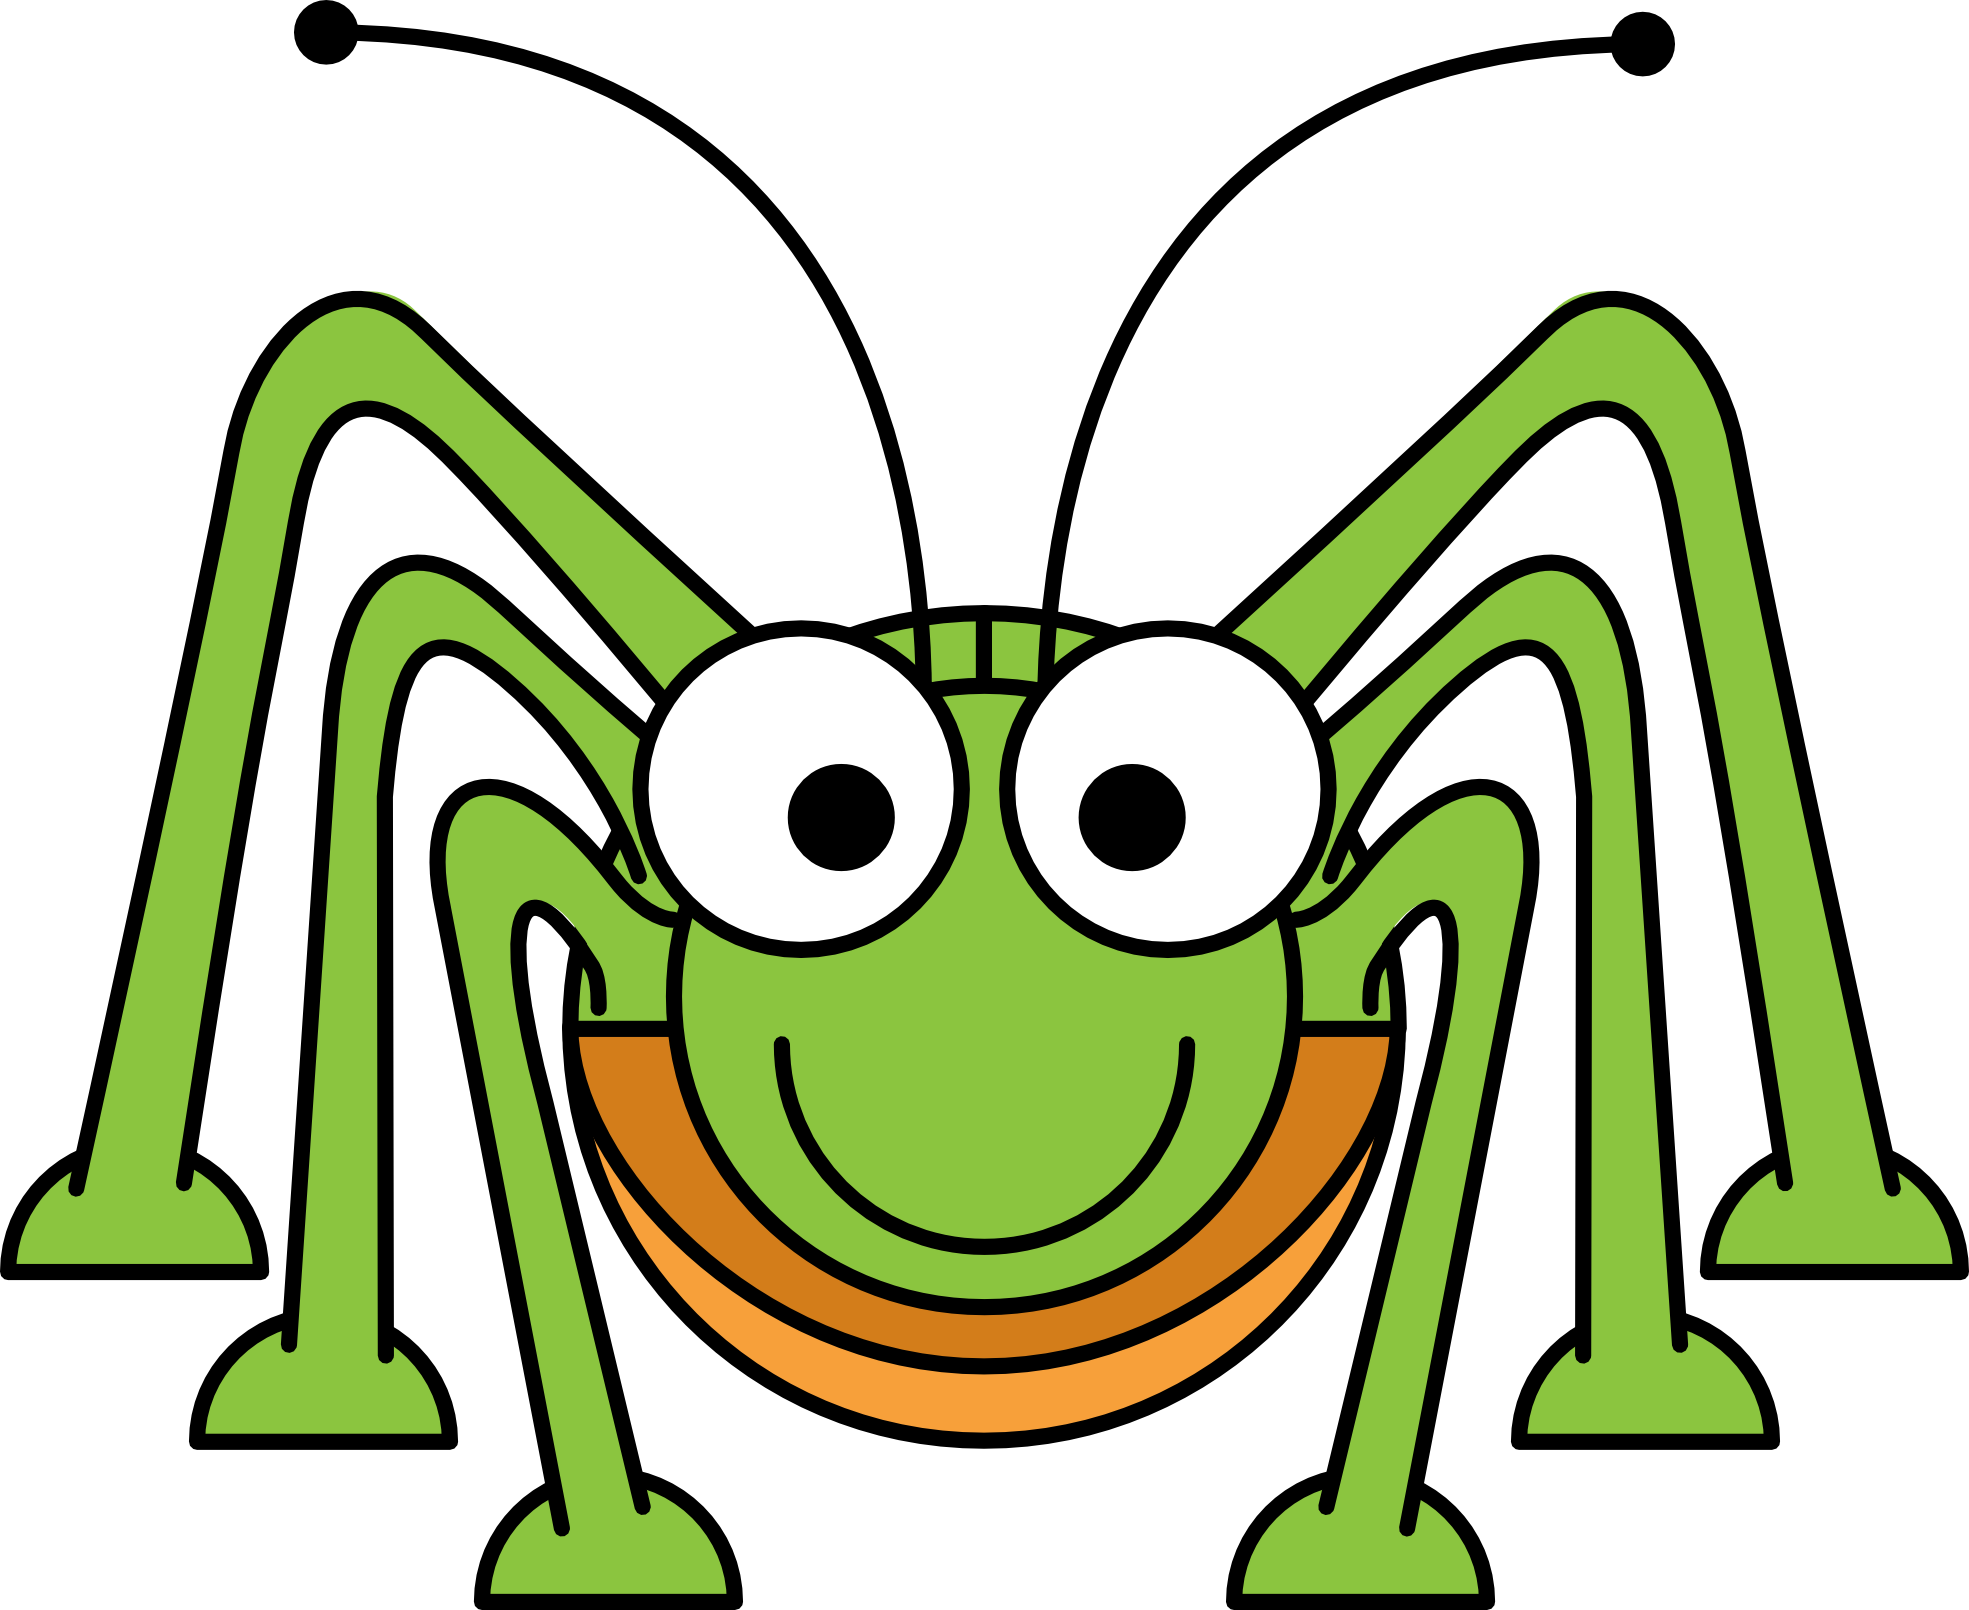 Grasshopper svg #4, Download drawings